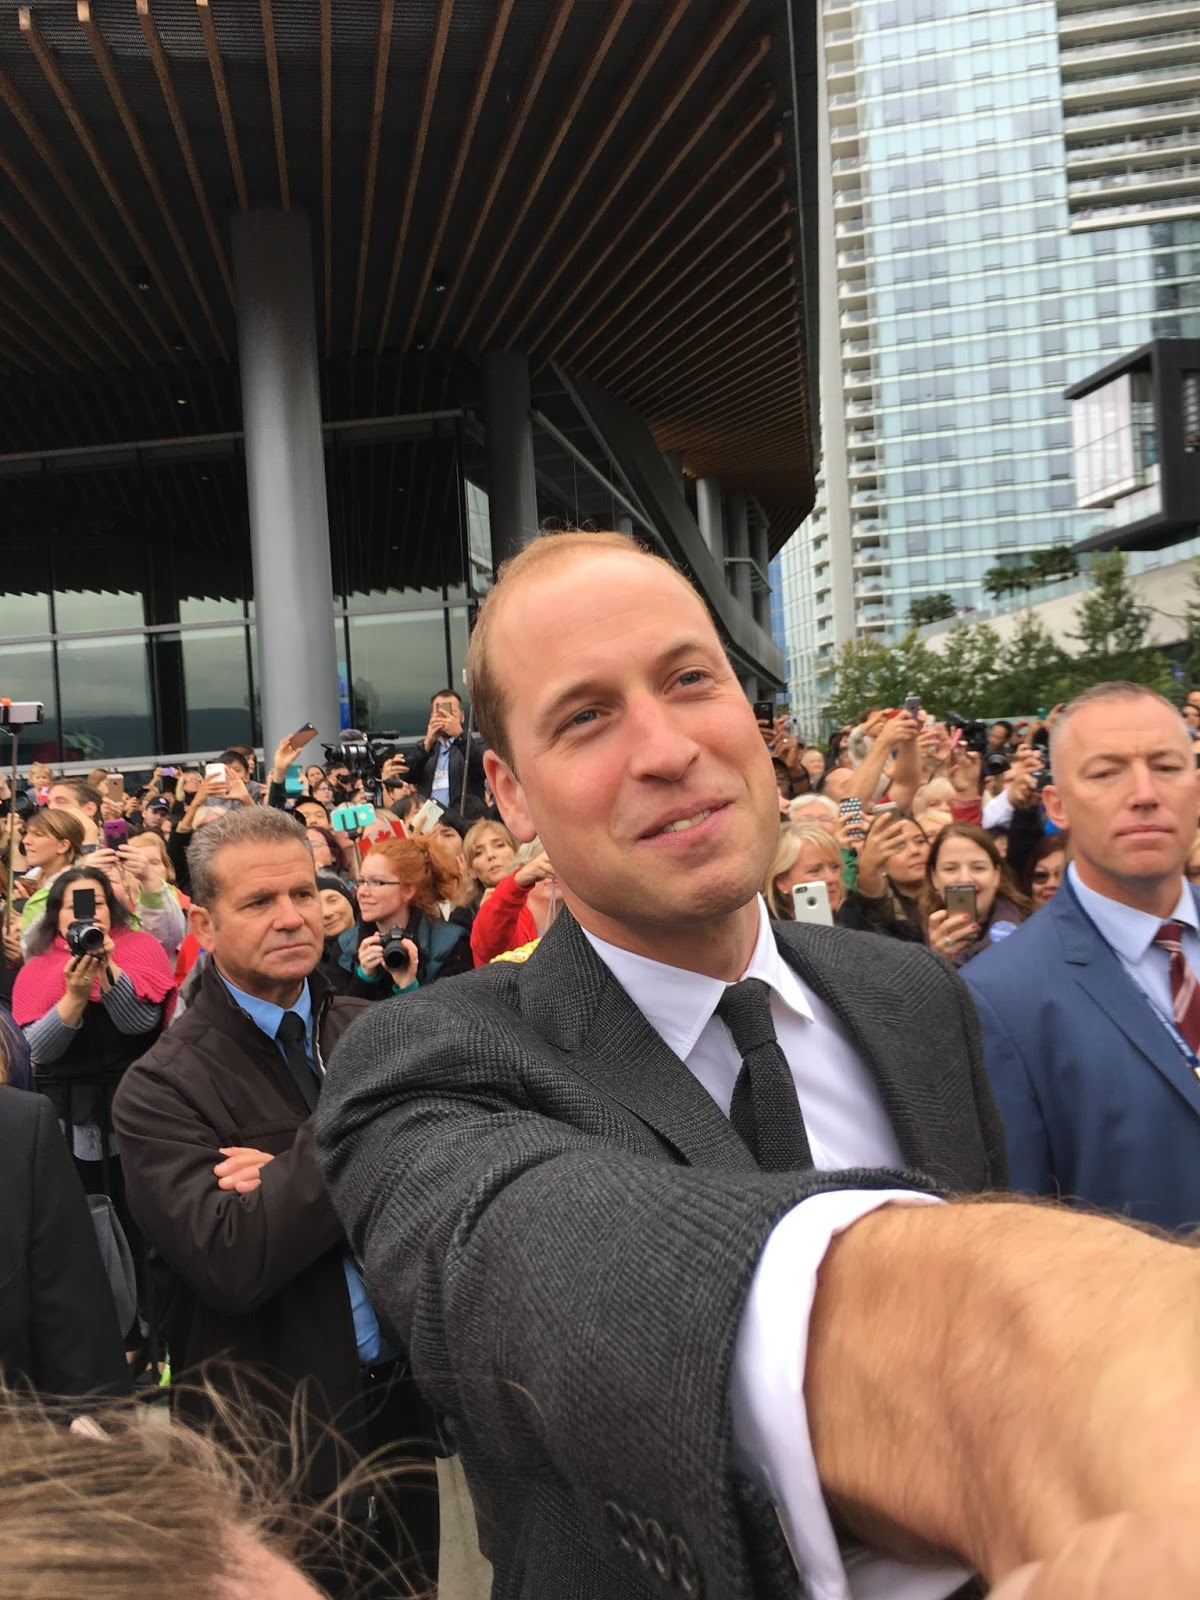 Prince William arrival in Vancouver